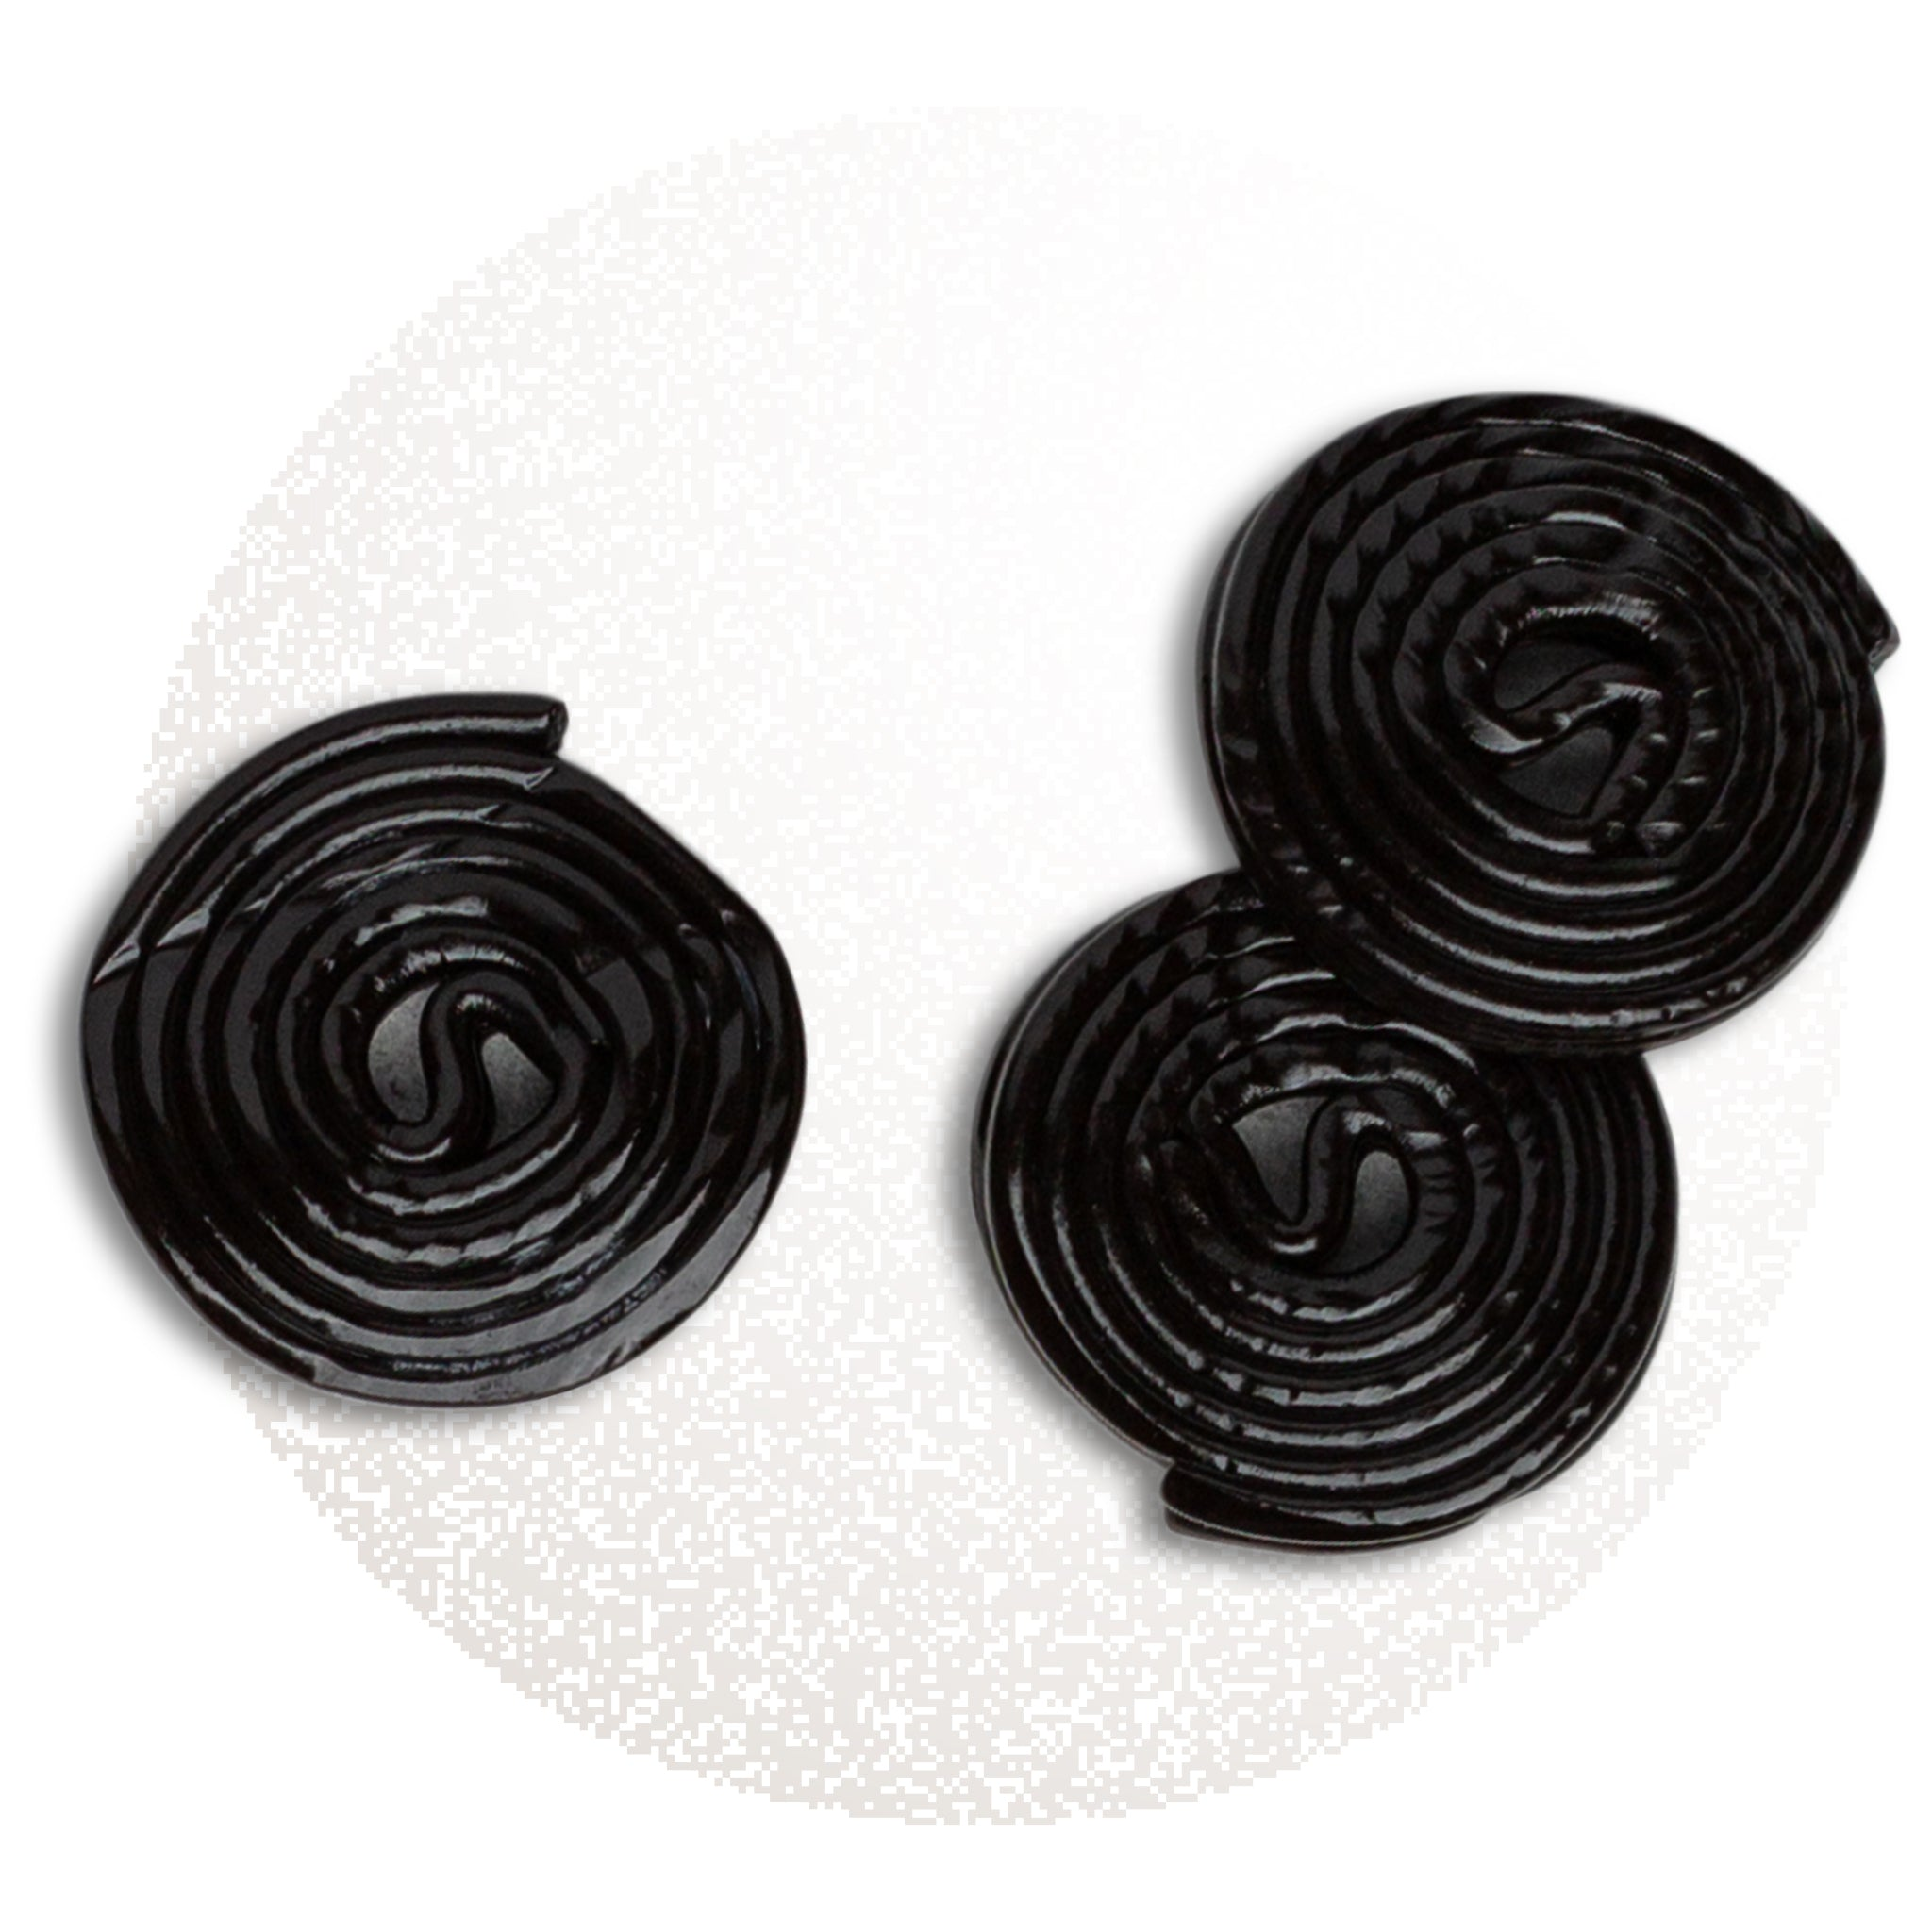 Black licorice rounds